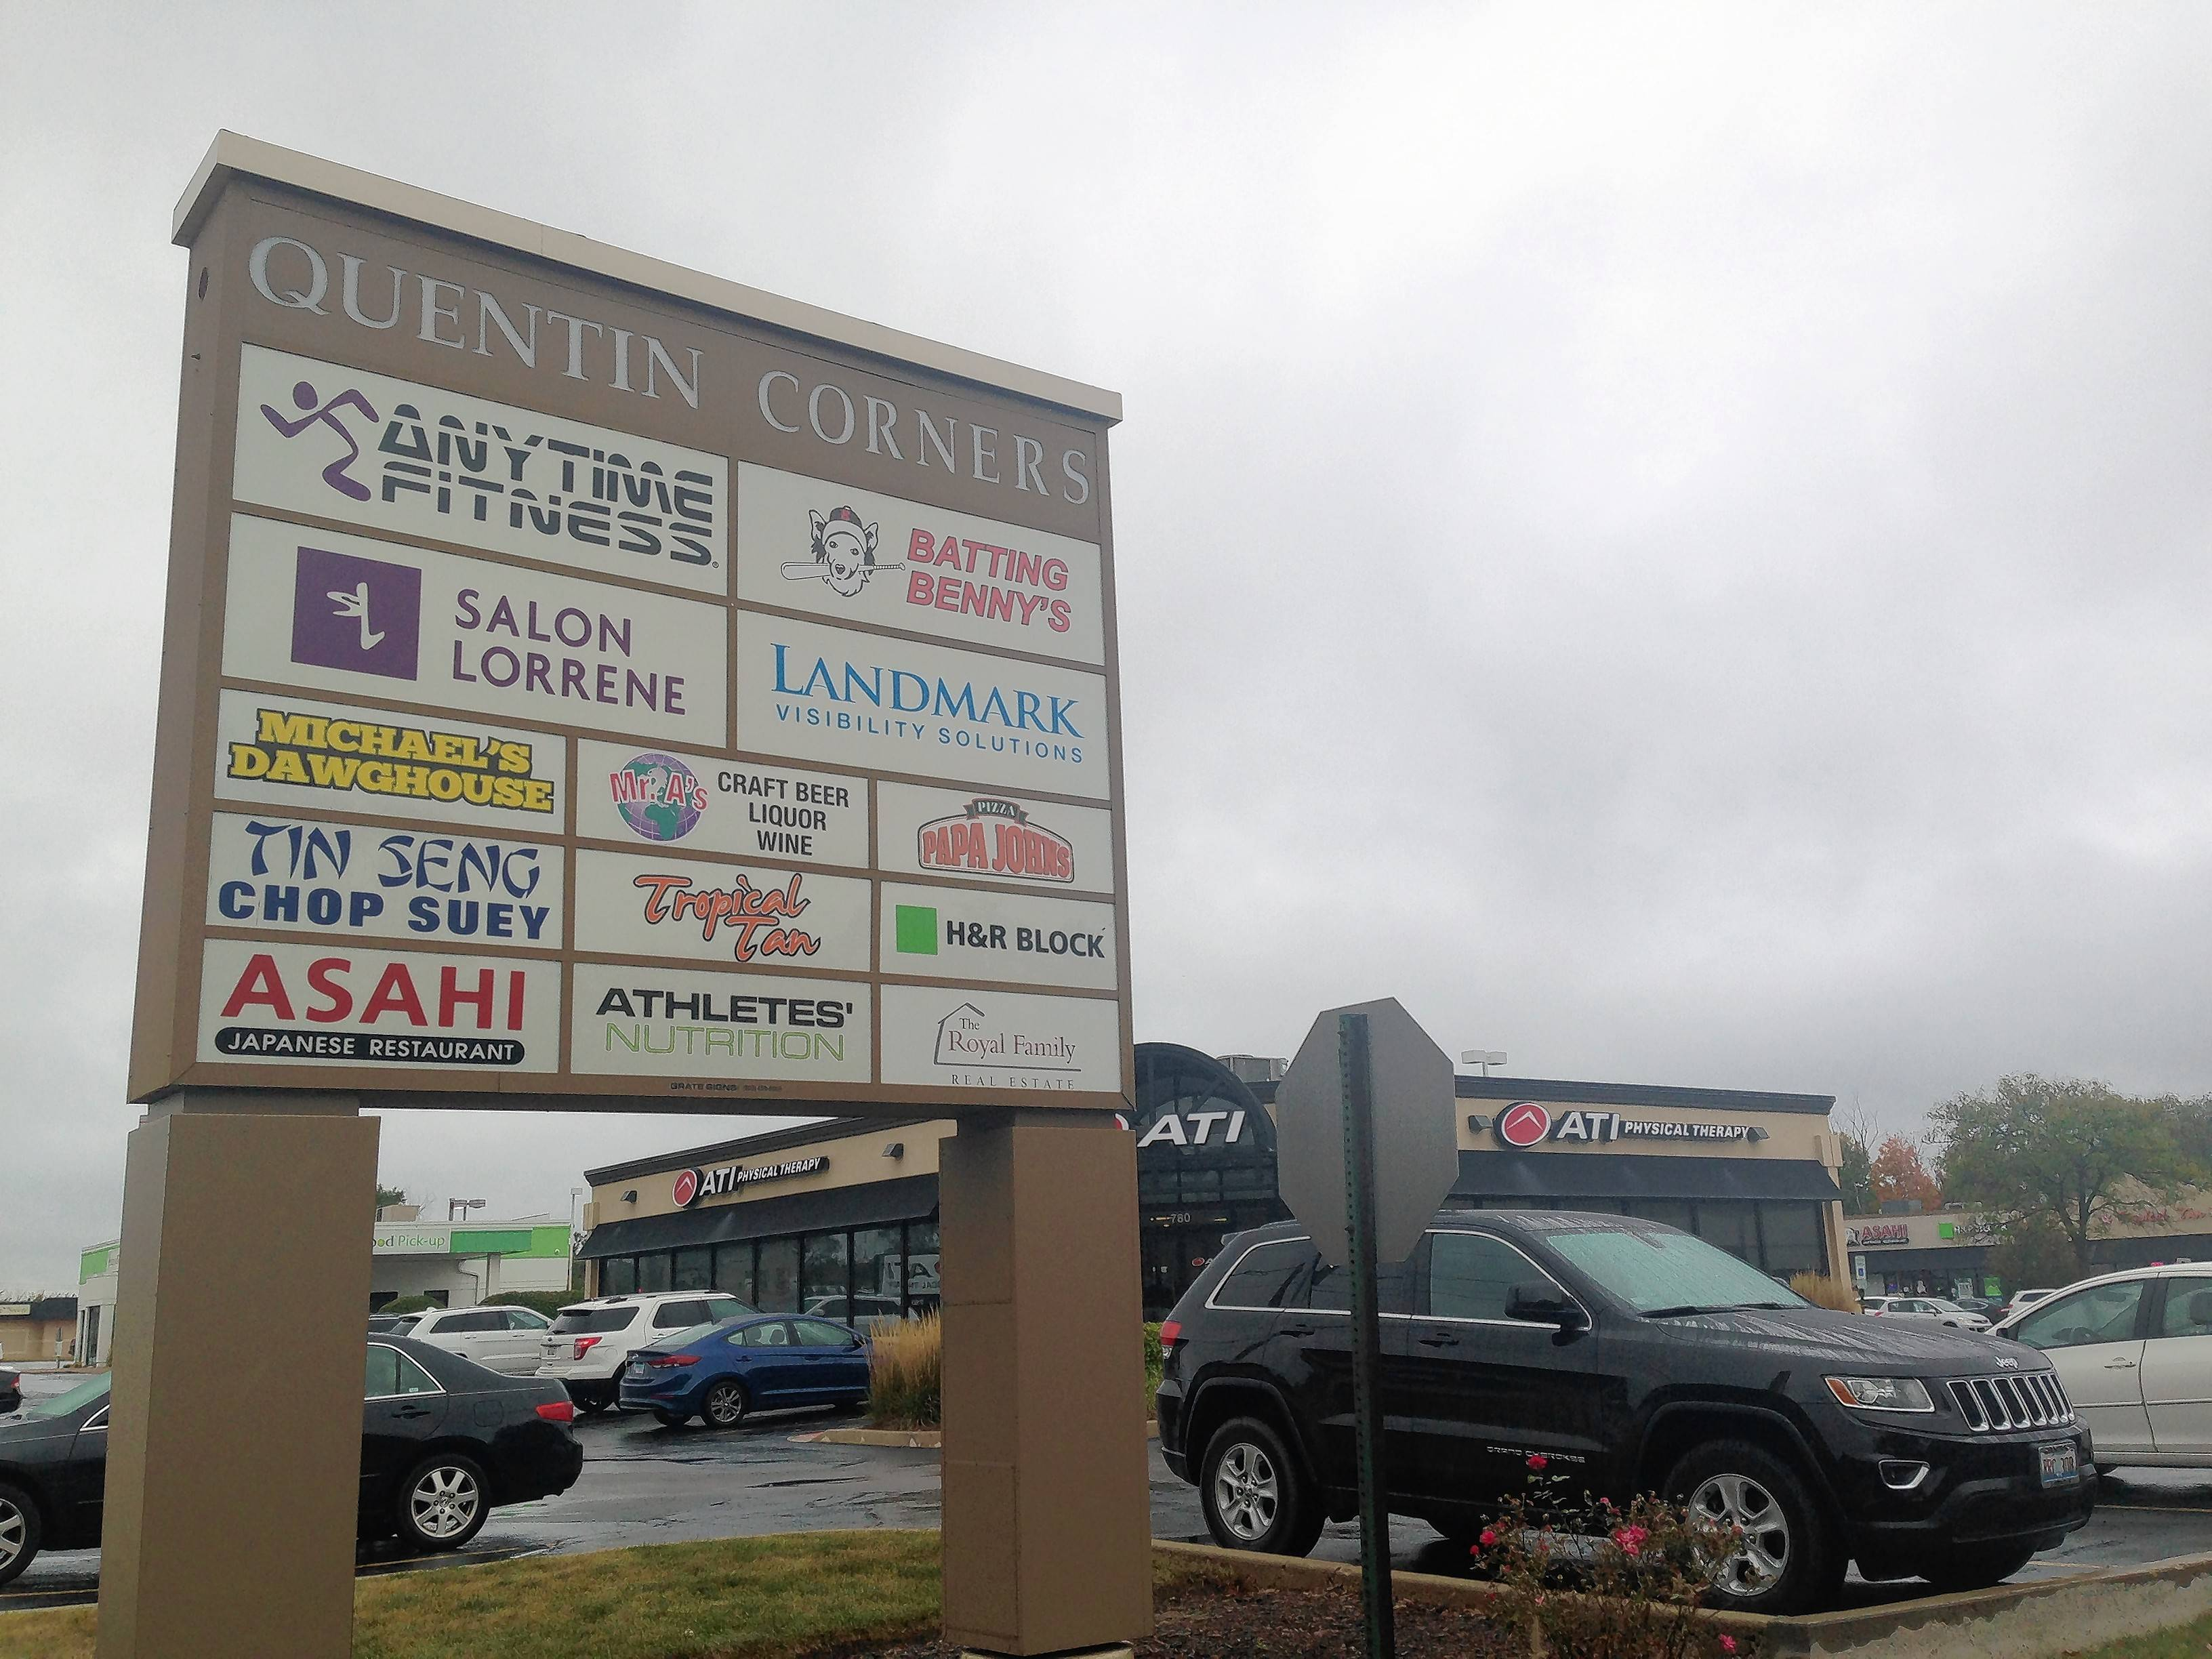 An animal hospital proposed for the Quentin Corners mall in Palatine was rejected for the second time since October by the village council this week.